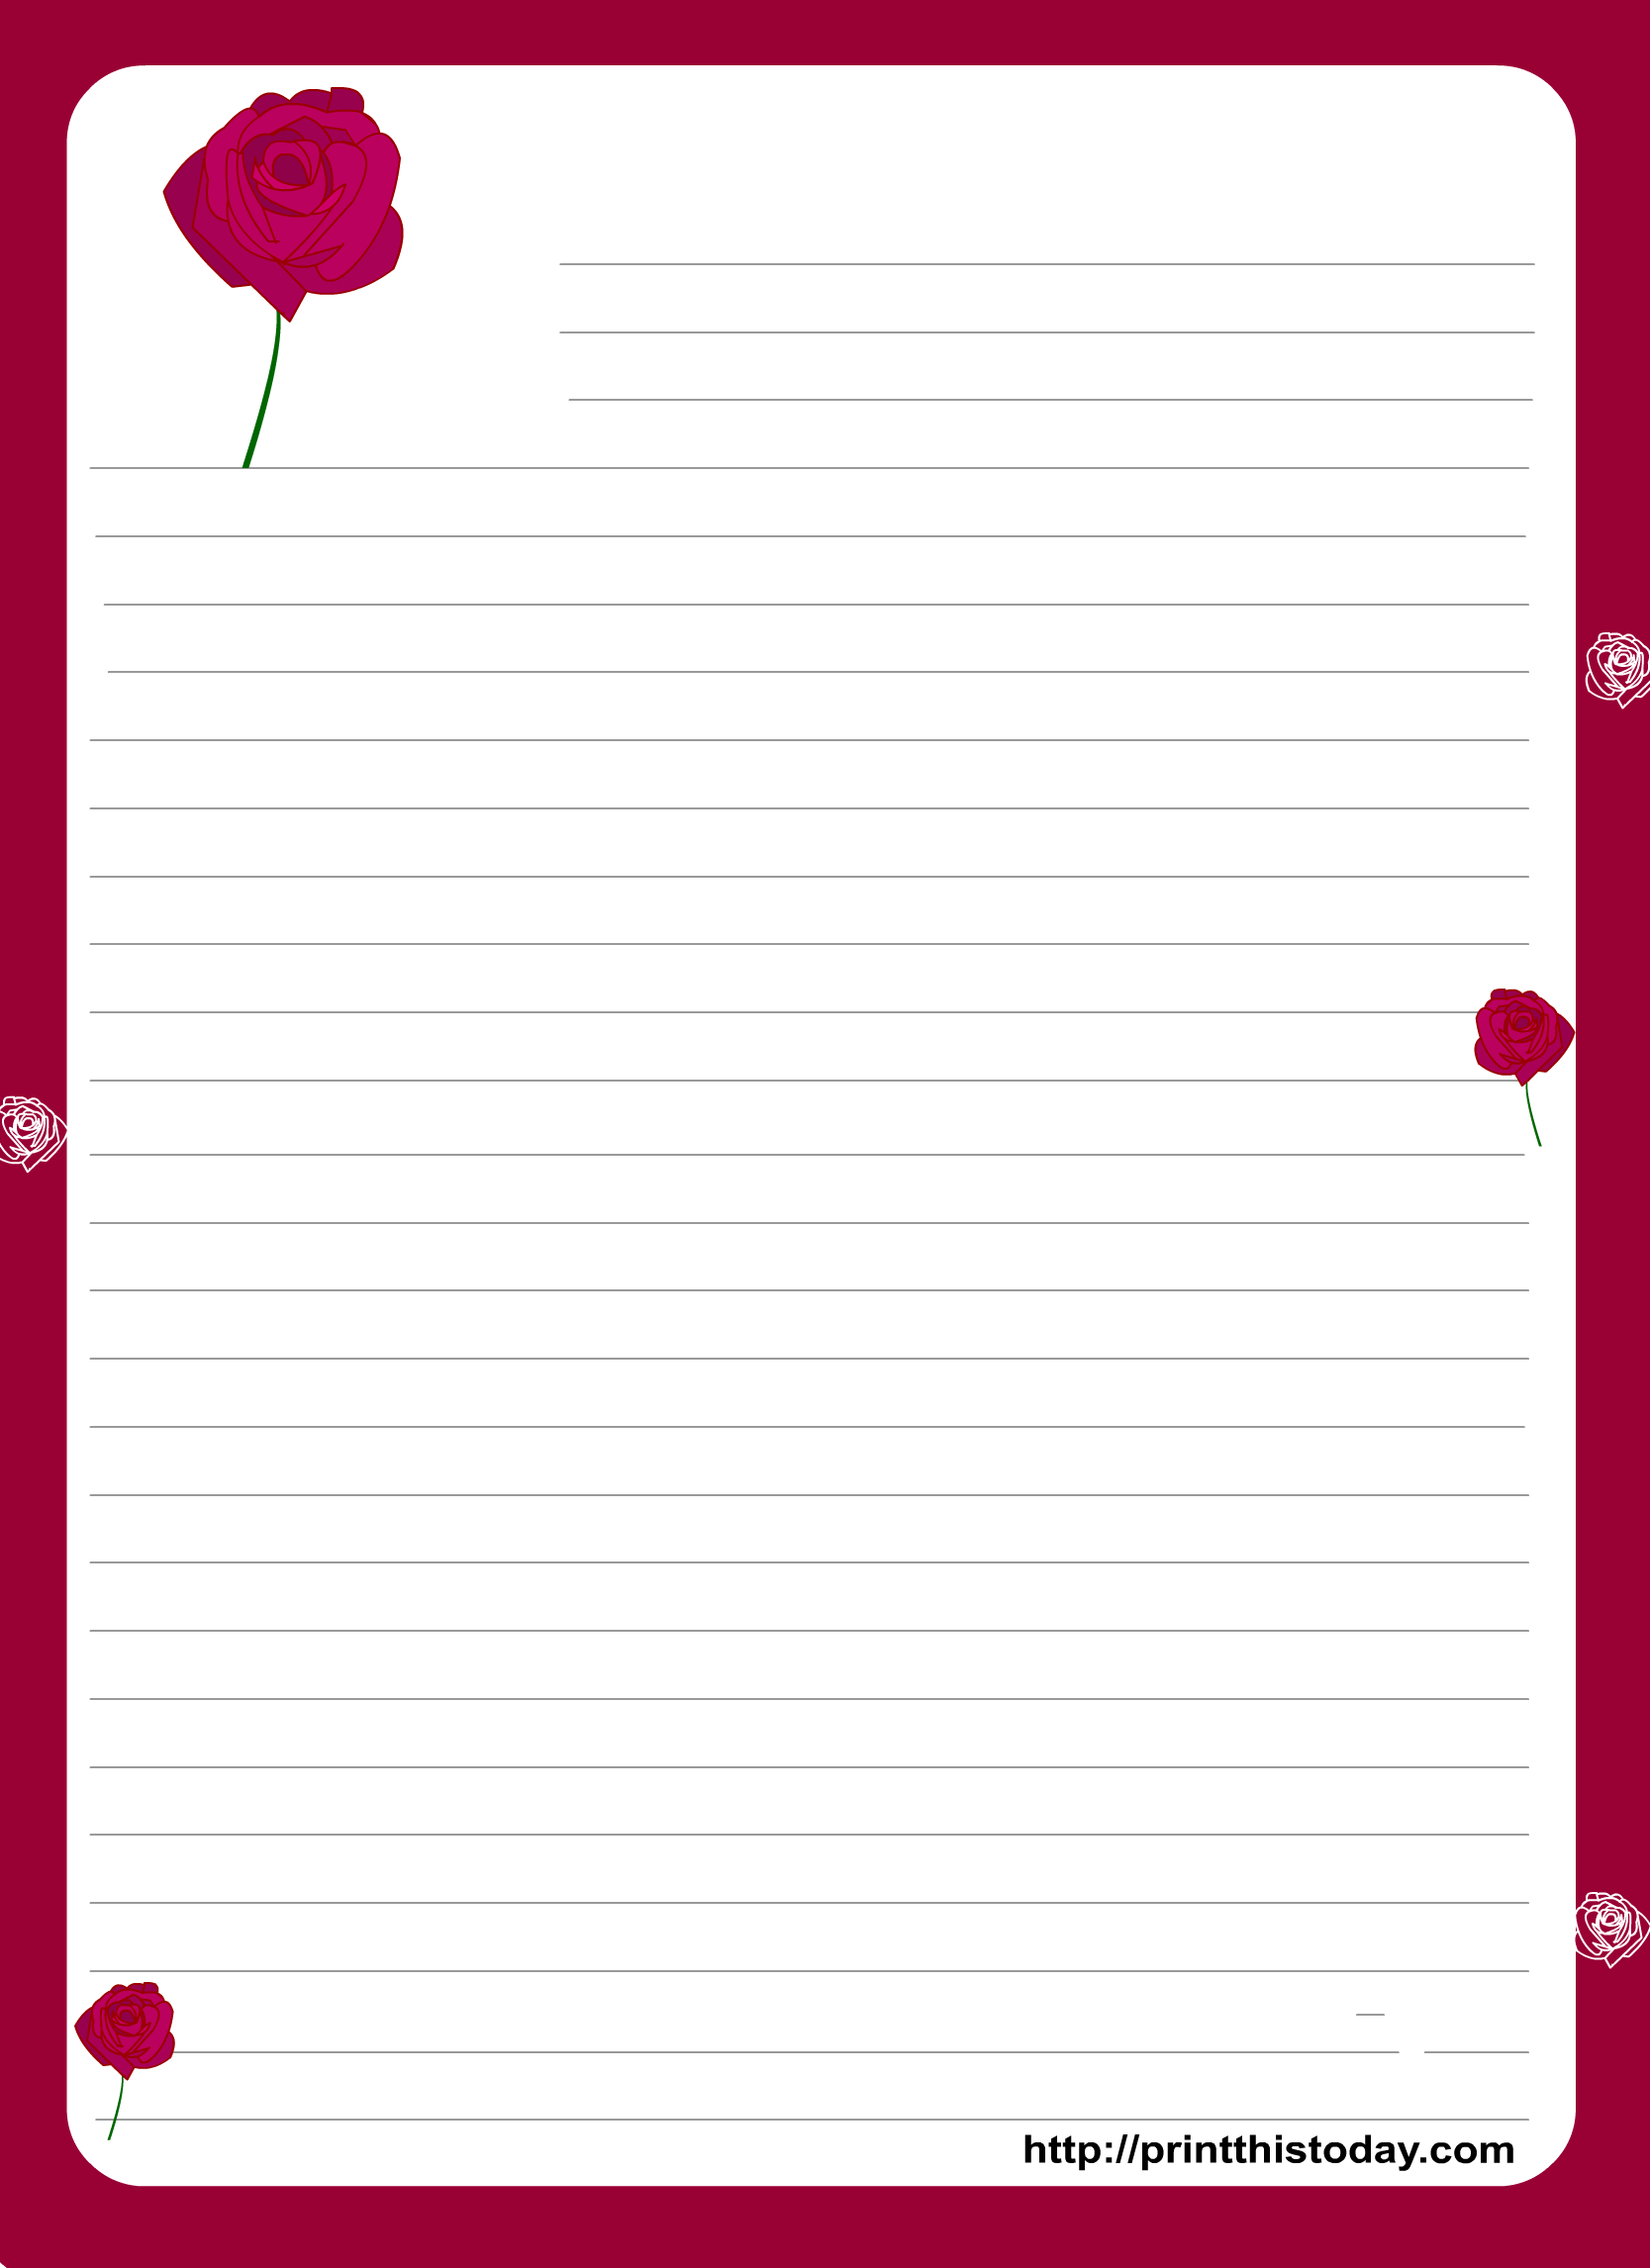 A Cute Letter Writing Paper Decorated With Cute Hearts Is Great To - Free Printable Love Letter Paper